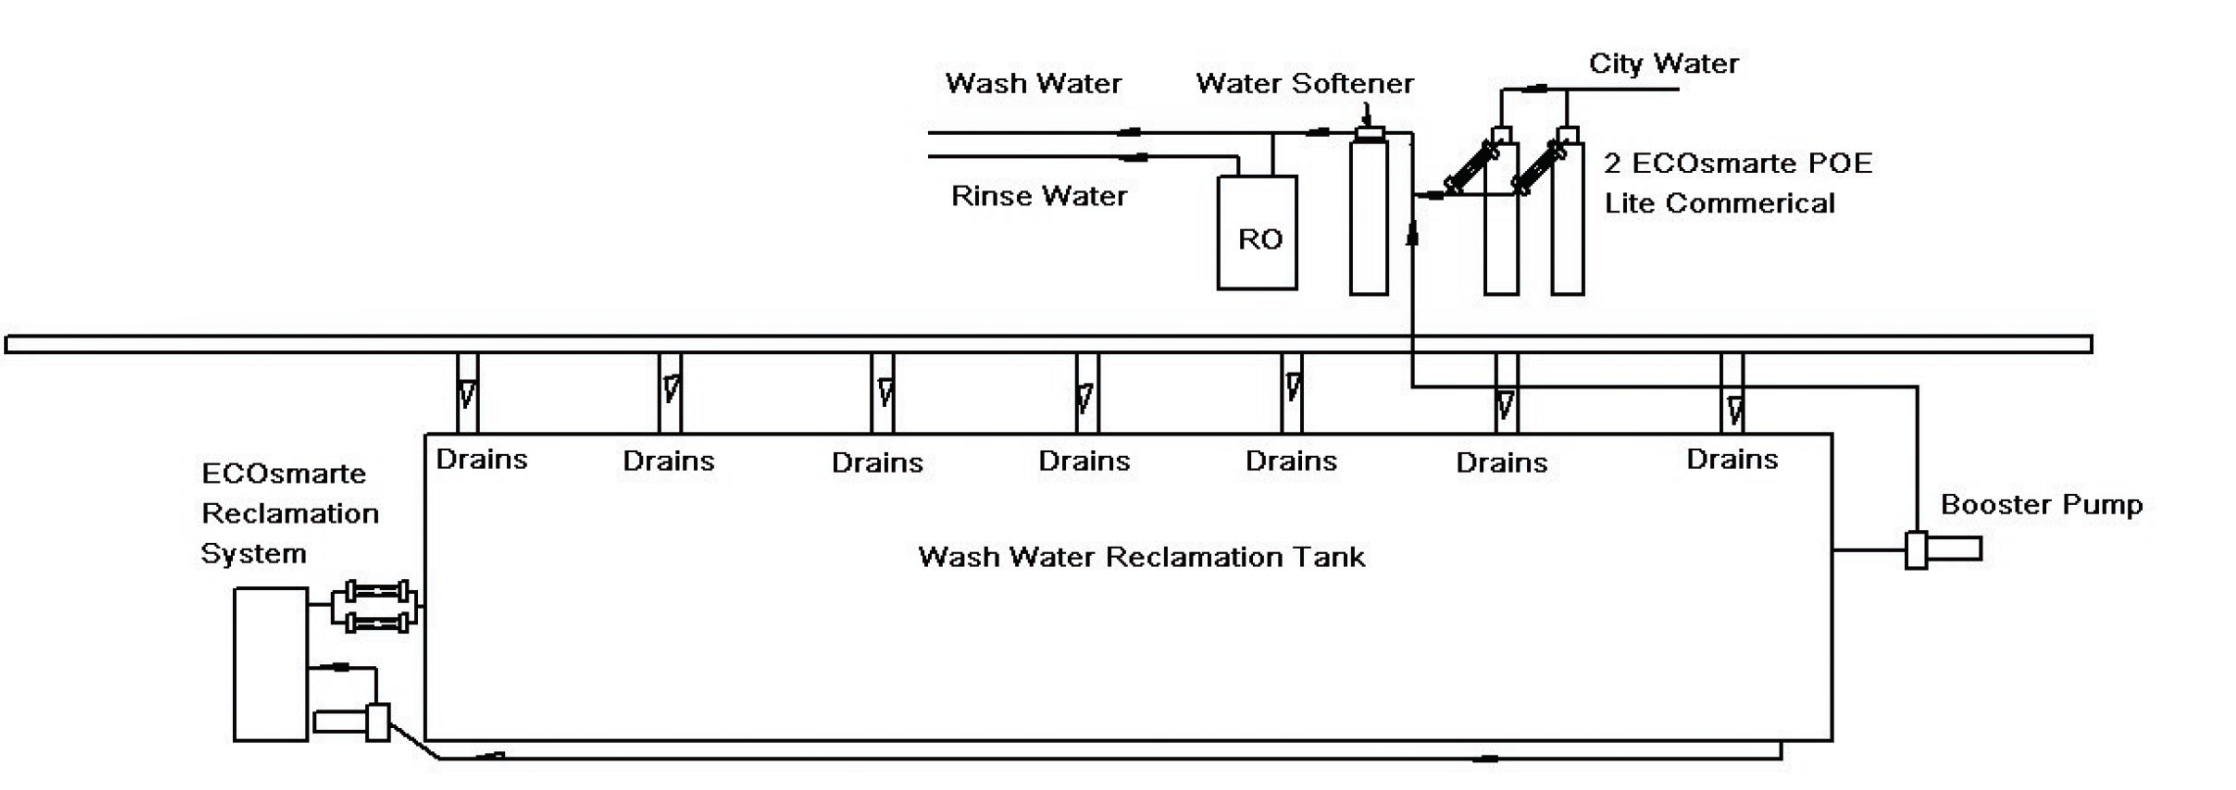 ECOsmarte car wash system diagram